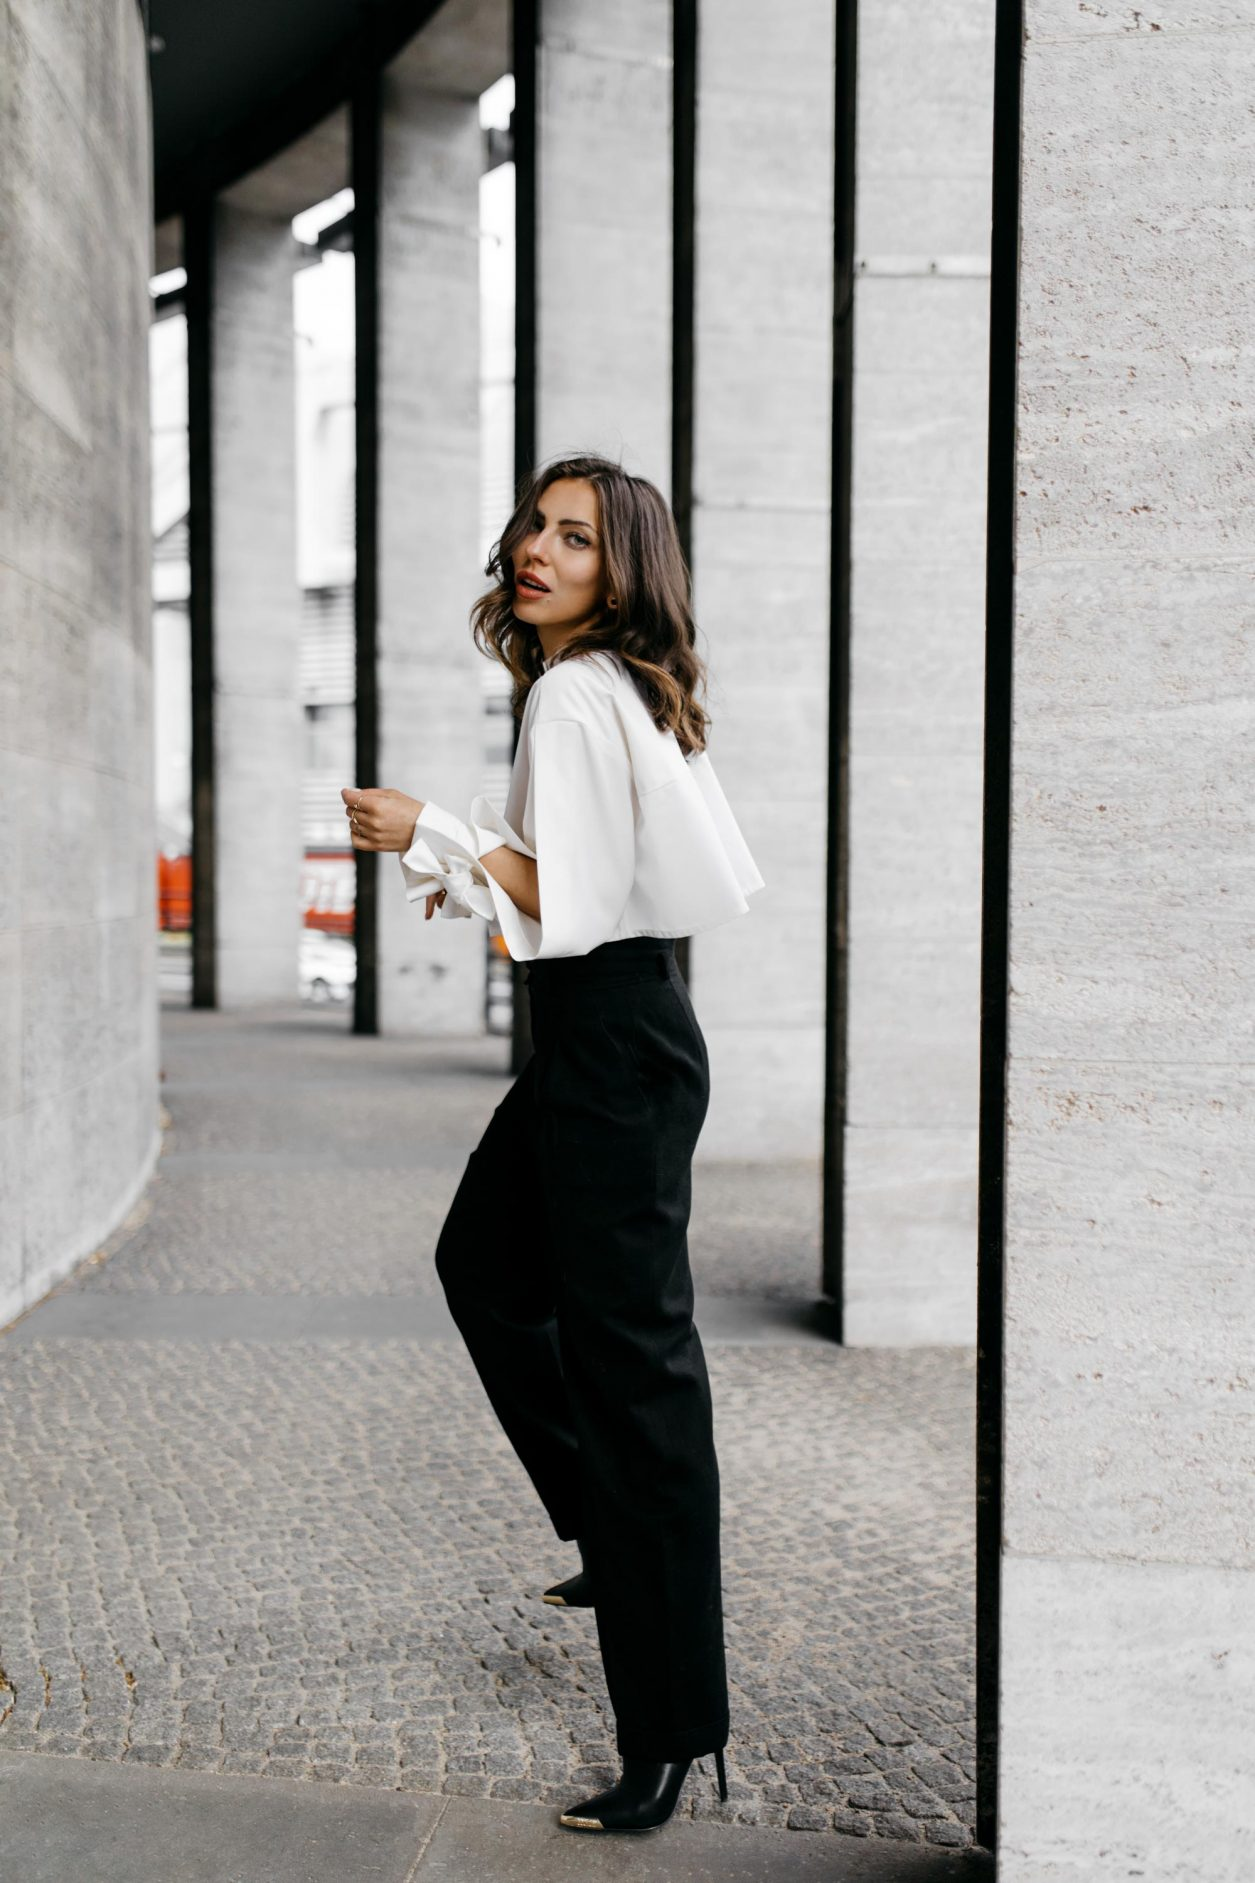 Anzeige | Streetstyle by Masha Sedgwick - fashion and beauty blogger from Berlin, Germany | Photographer Tonya Matyu | Minimalistic black and white outfit, business chic, high end, wearing black vintage Chanel wool pants, white cropped Nobi Talai blouse with puffed arms, dark day make-up, black leather high heels | Photo spot: Berlin Messe ICC